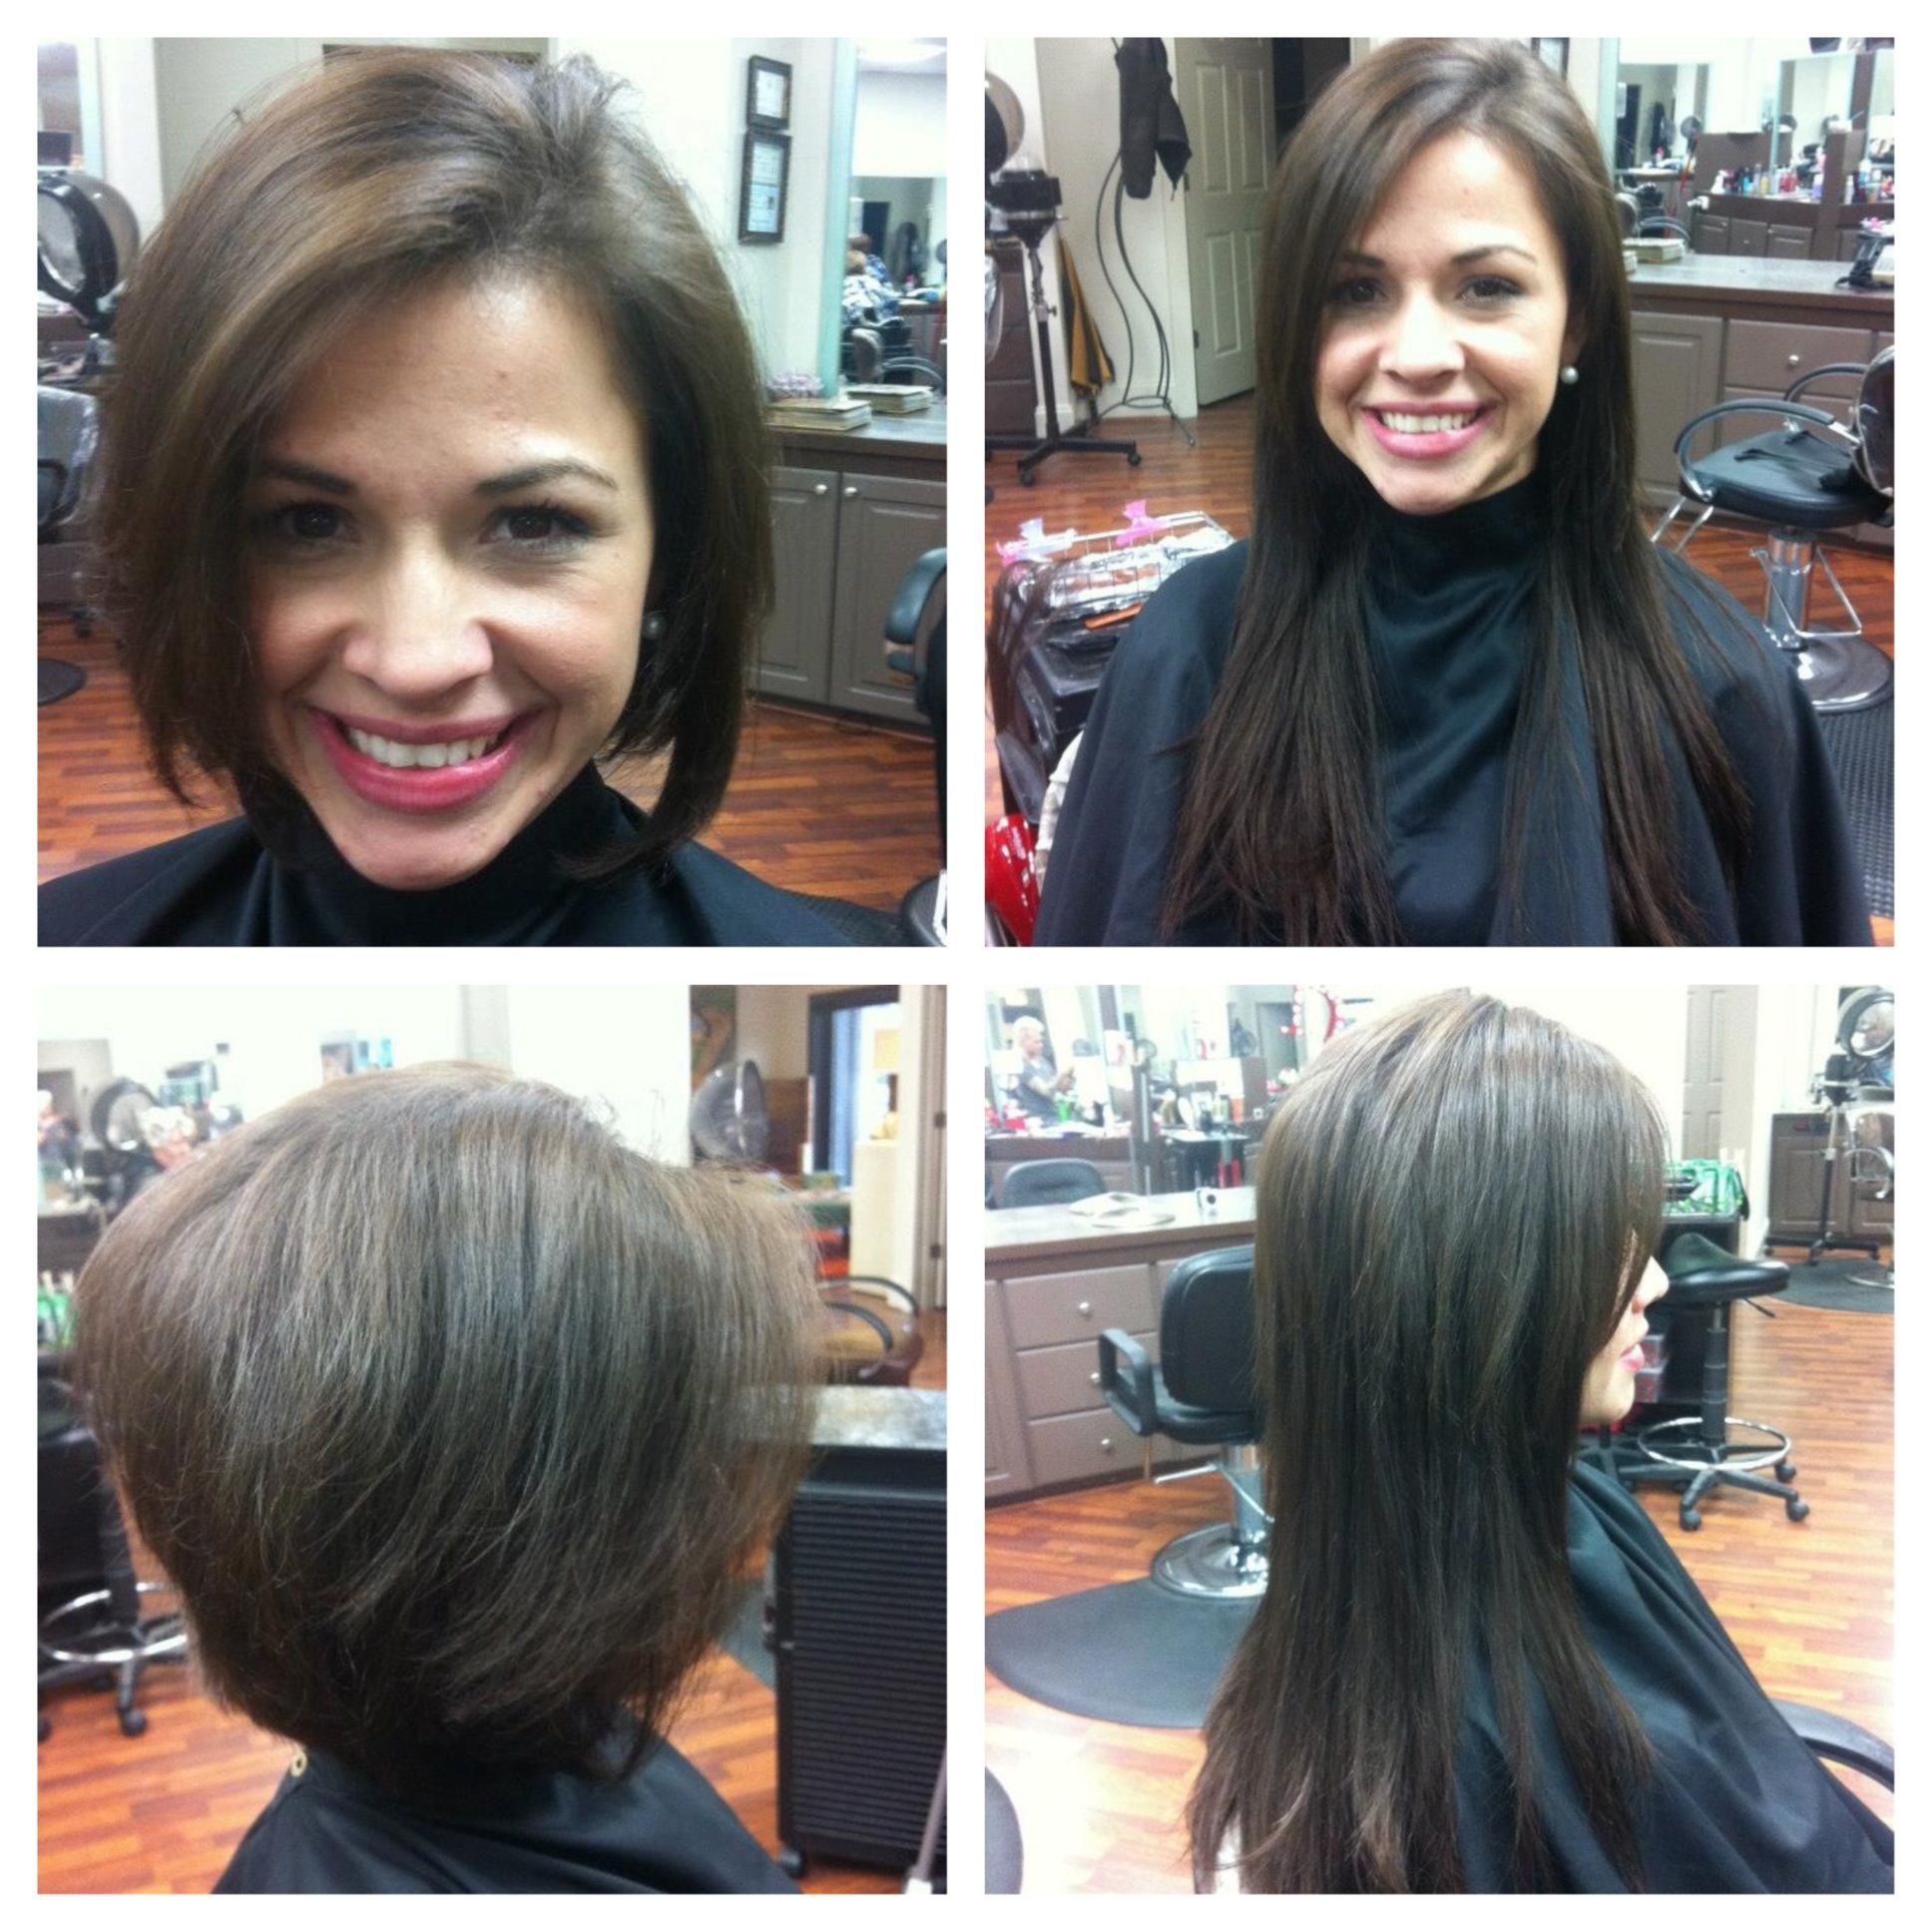 Lauran S Hair Style Thanks For Her Share Every Woman Can Own Long